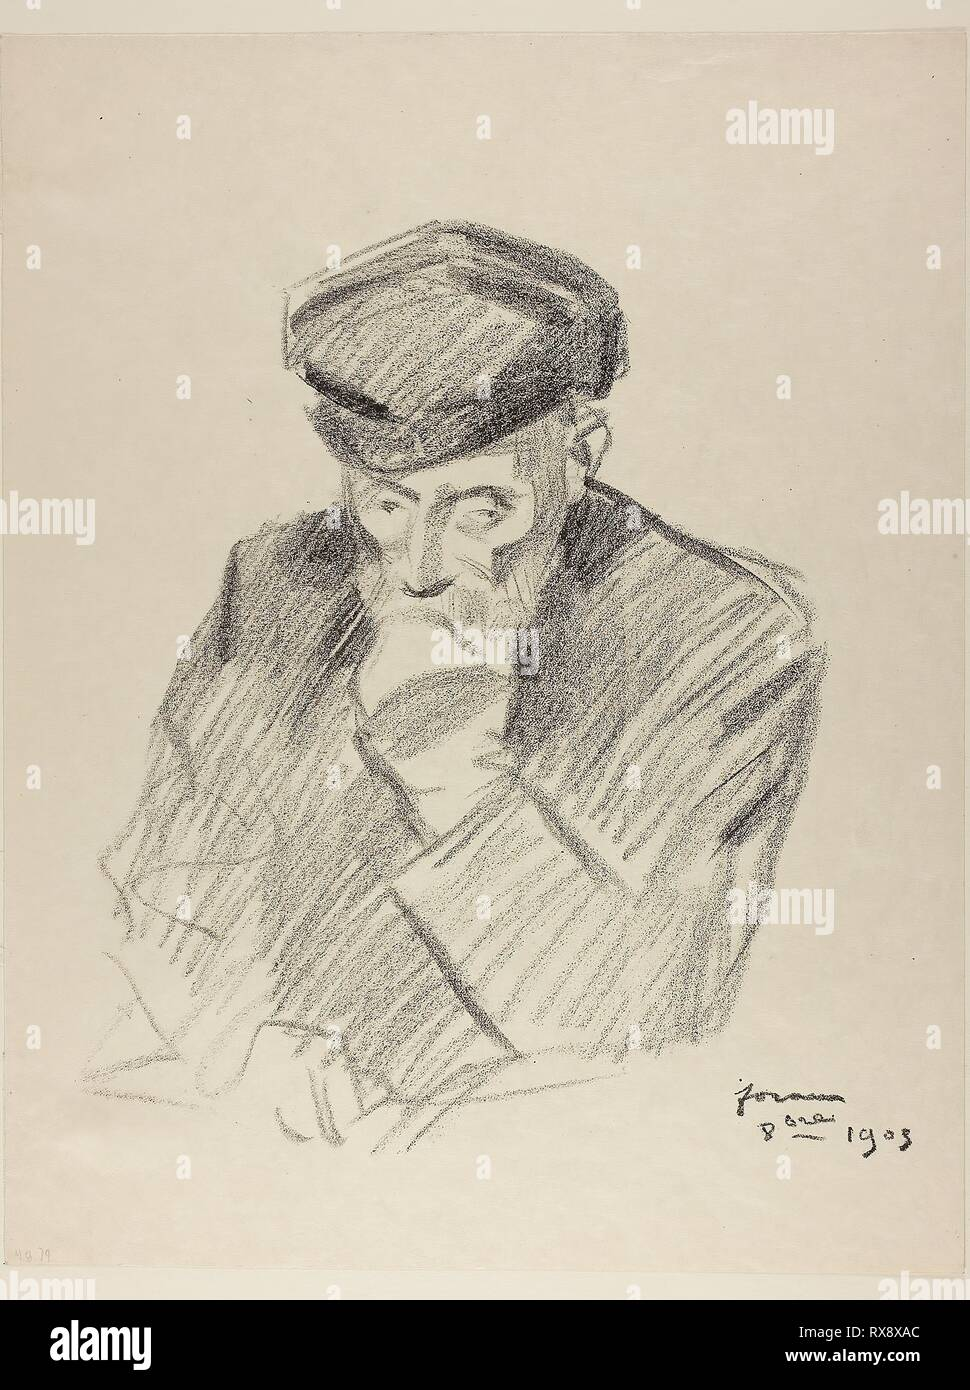 Portrait of Renoir, Fourth Plate. Jean Louis Forain; French, 1852-1931. Date: 1905. Dimensions: 267 × 219 mm (image); 351 × 273 mm (sheet). Lithograph on cream Japanese paper. Origin: France. Museum: The Chicago Art Institute. - Stock Image